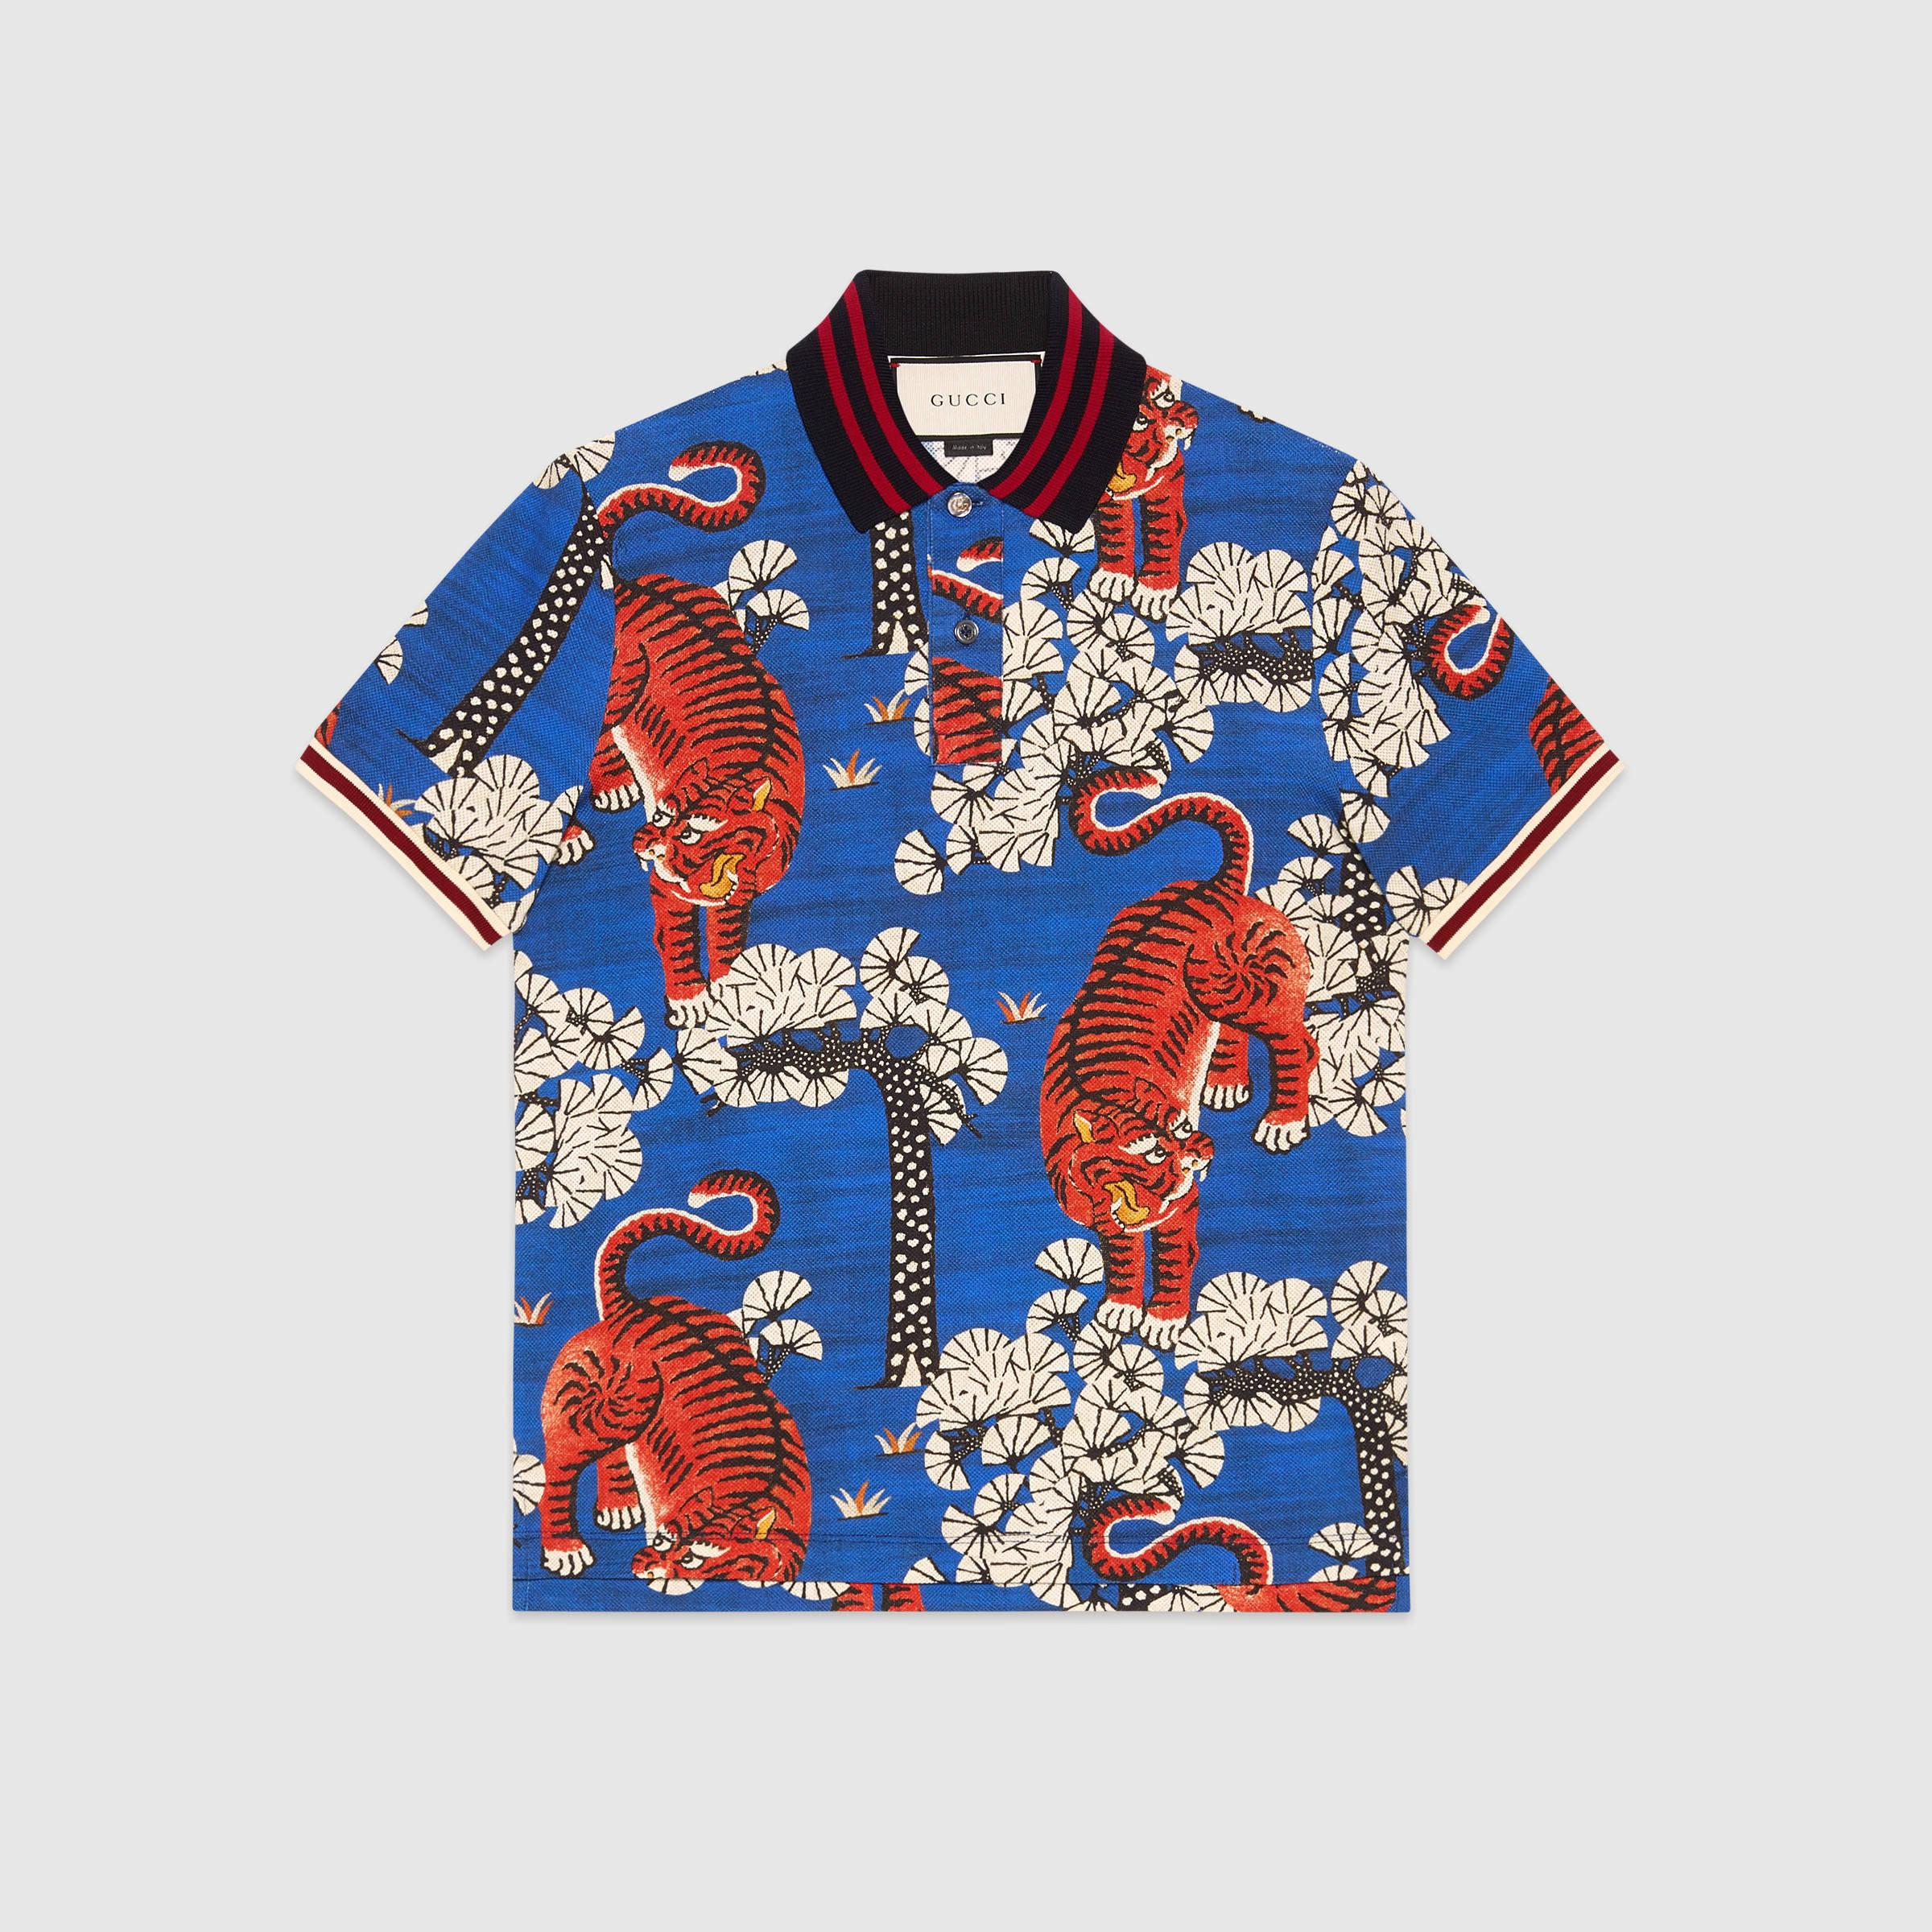 914a87a1bd33fe Gucci Bengal Print Polo in Blue for Men - Lyst